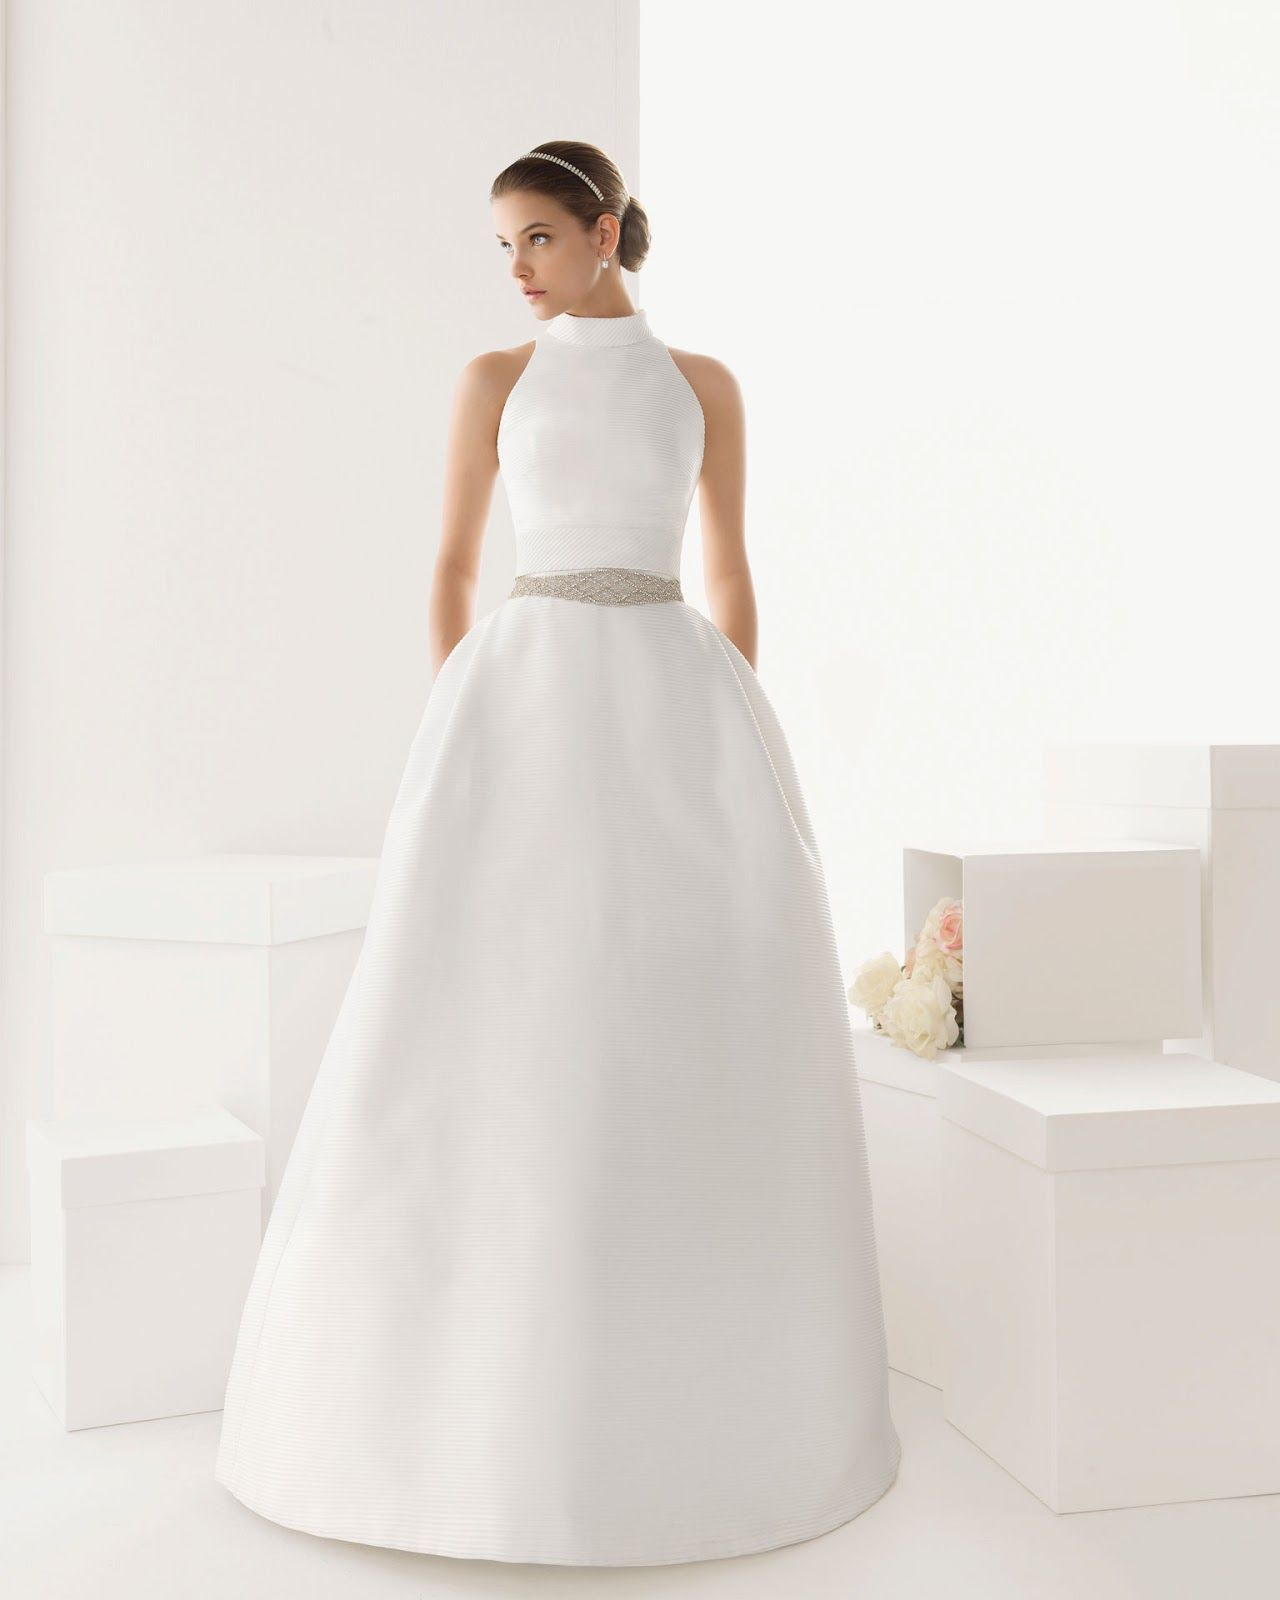 High Neck Wedding Dress With Pockets By Rosa Clara Wedding Dresses Satin Wedding Dress With Pockets High Neck Wedding Dress